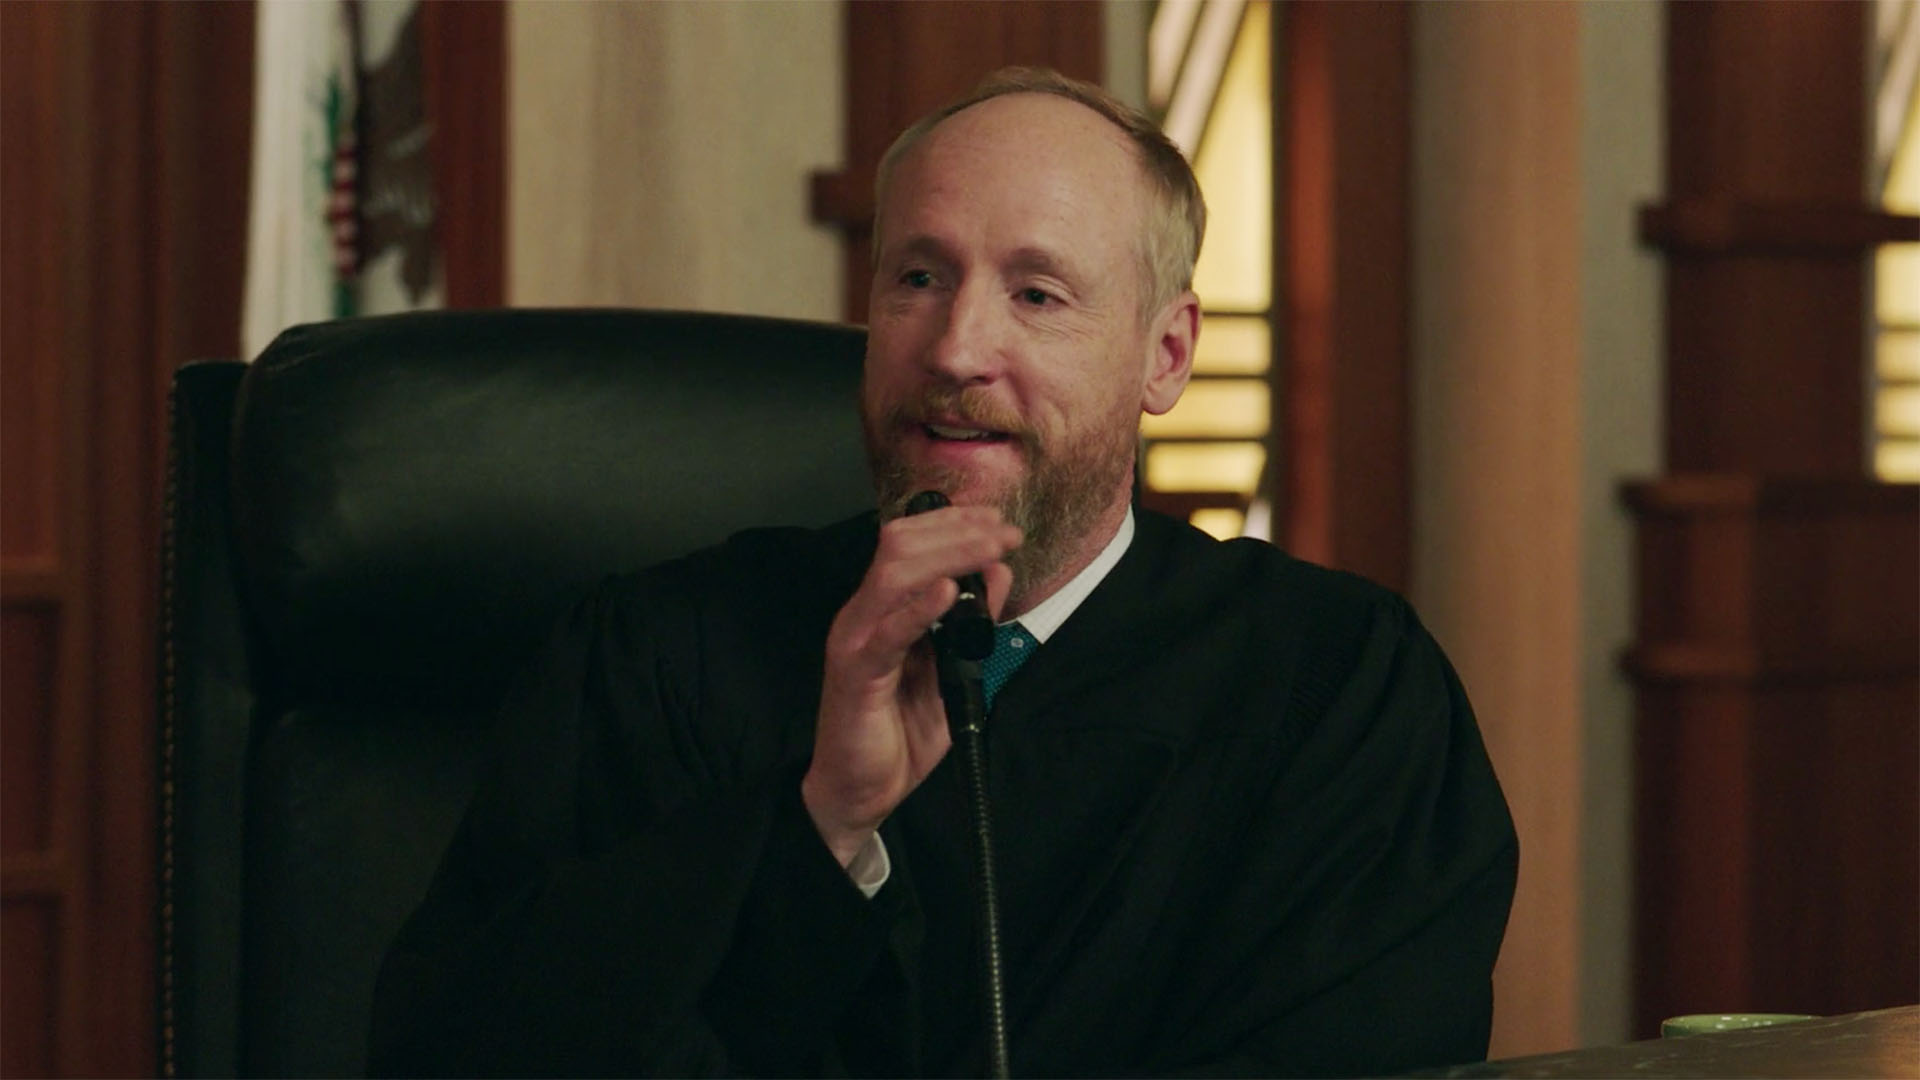 Matt Walsh as Judge Oliver Walenstadt